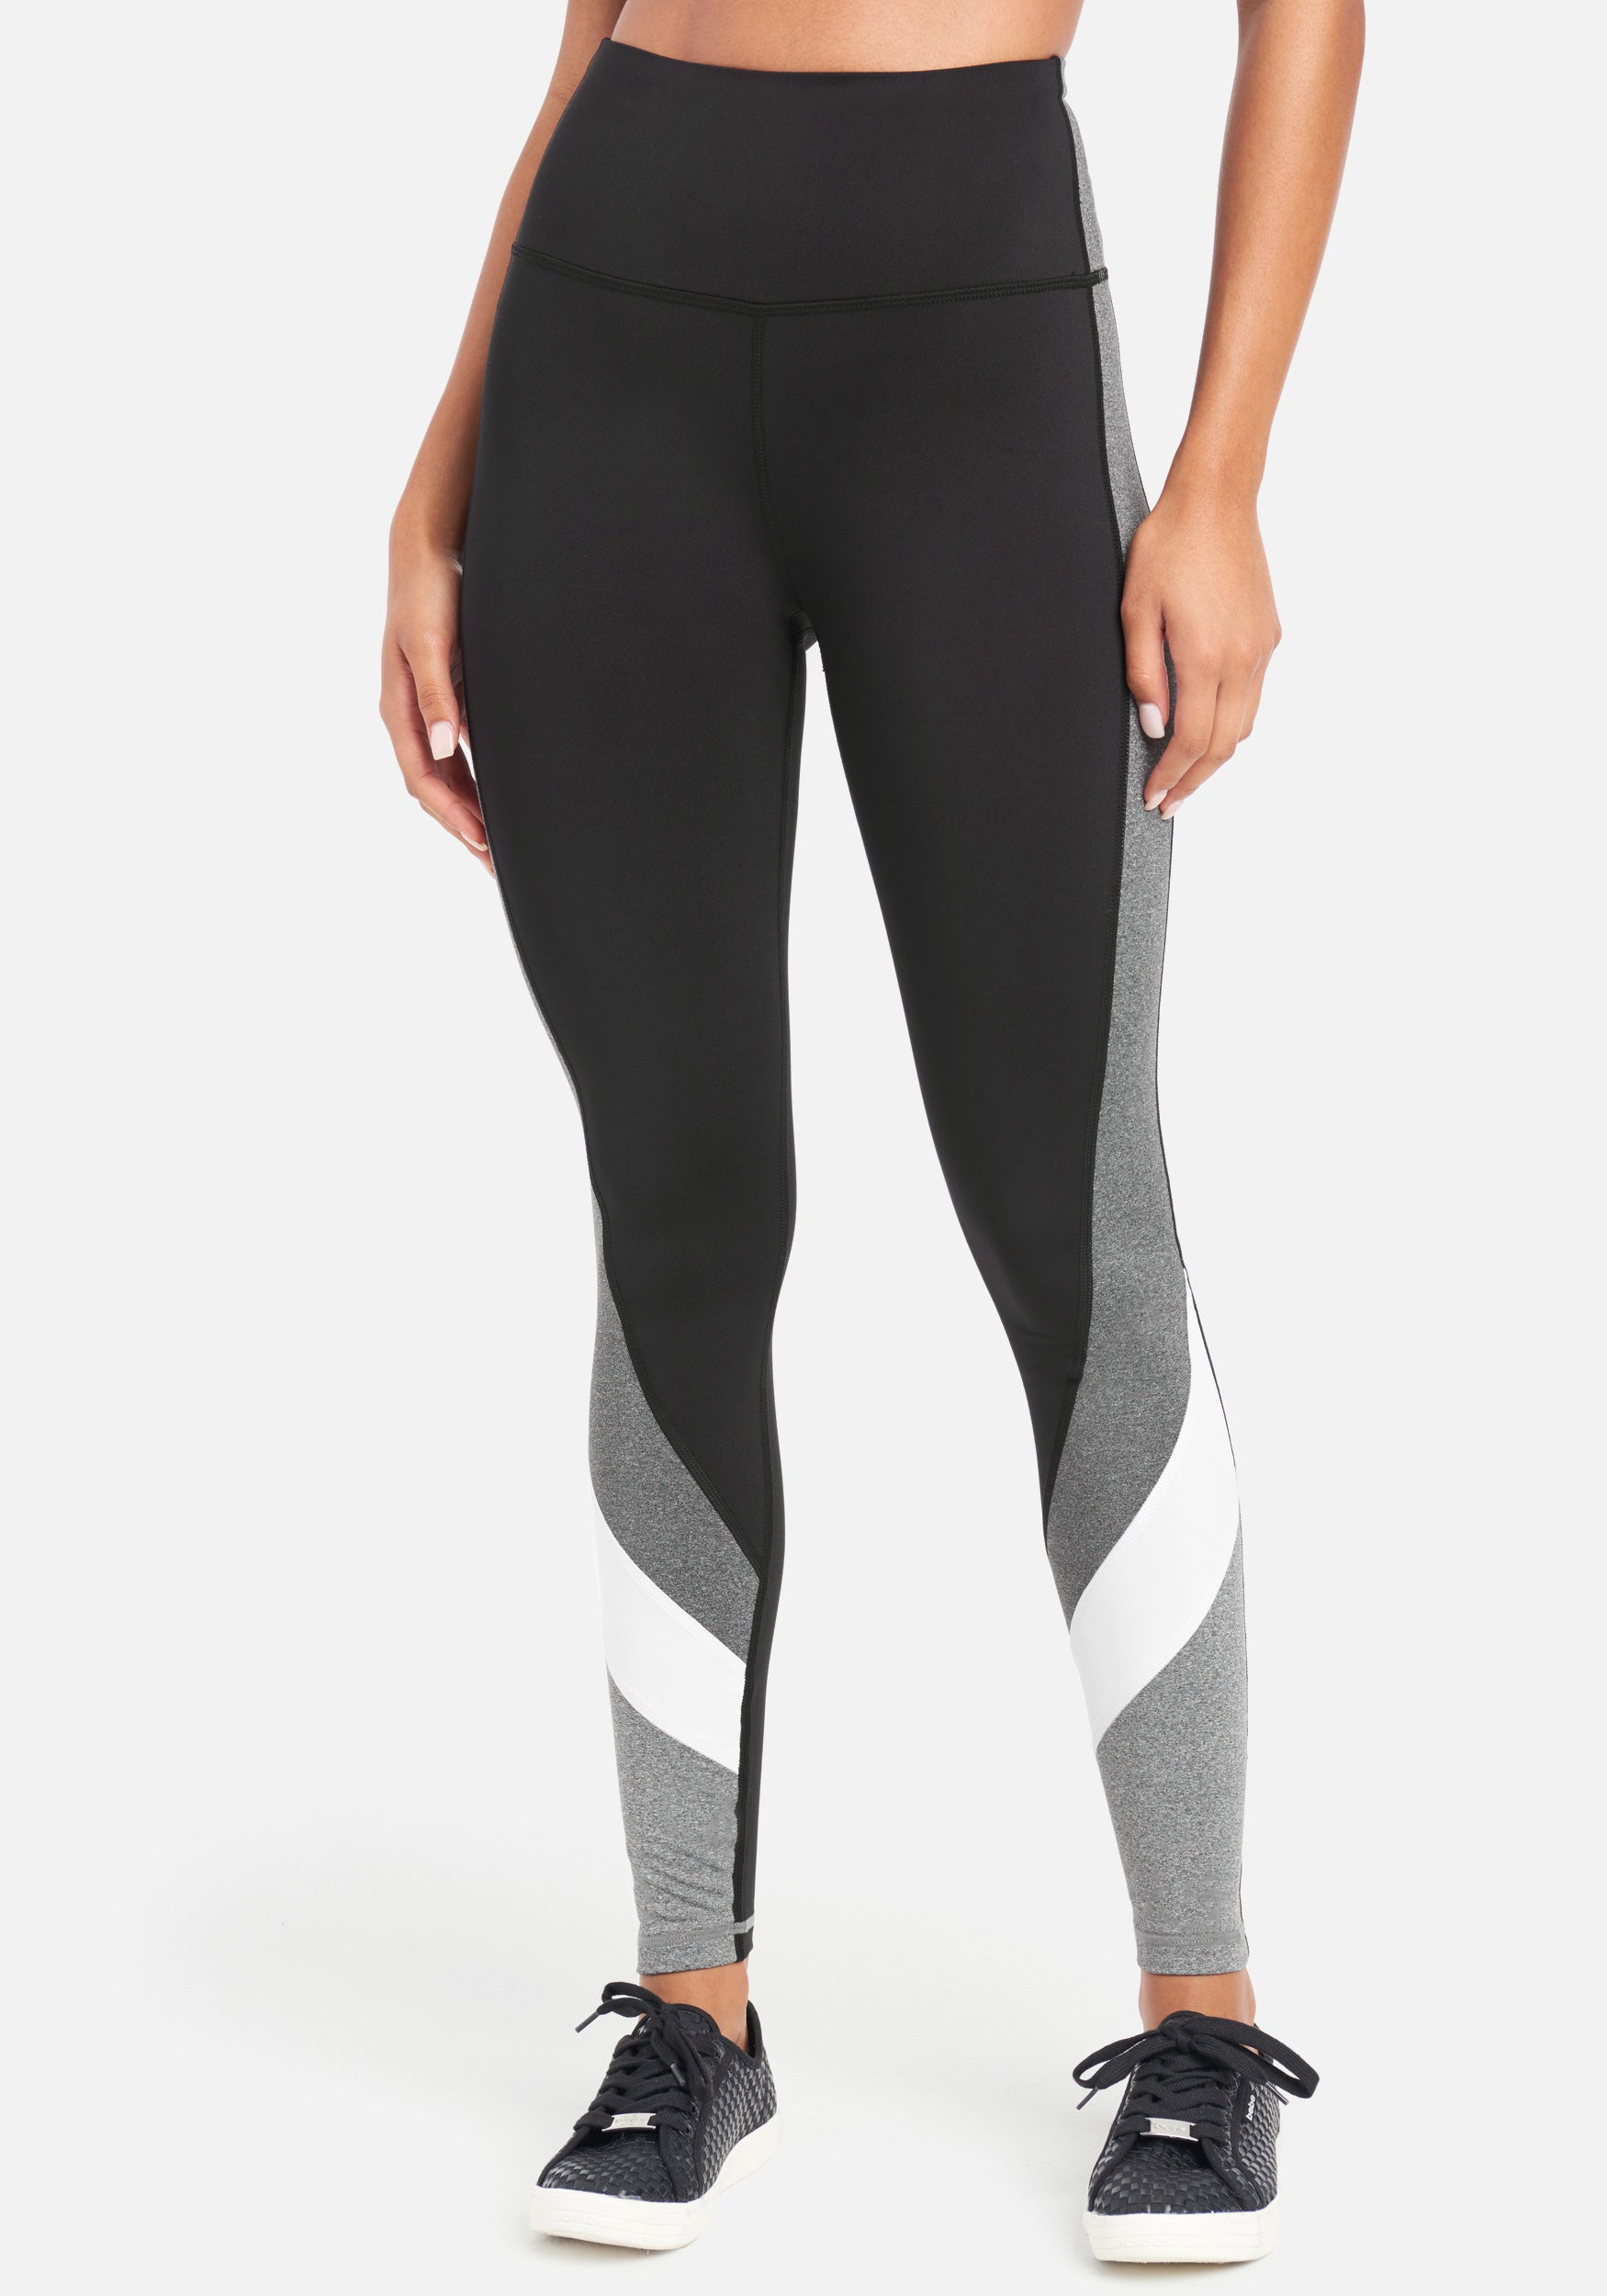 Women's Bebe Sport Color Block Legging, Size Small in Black/Charcoal